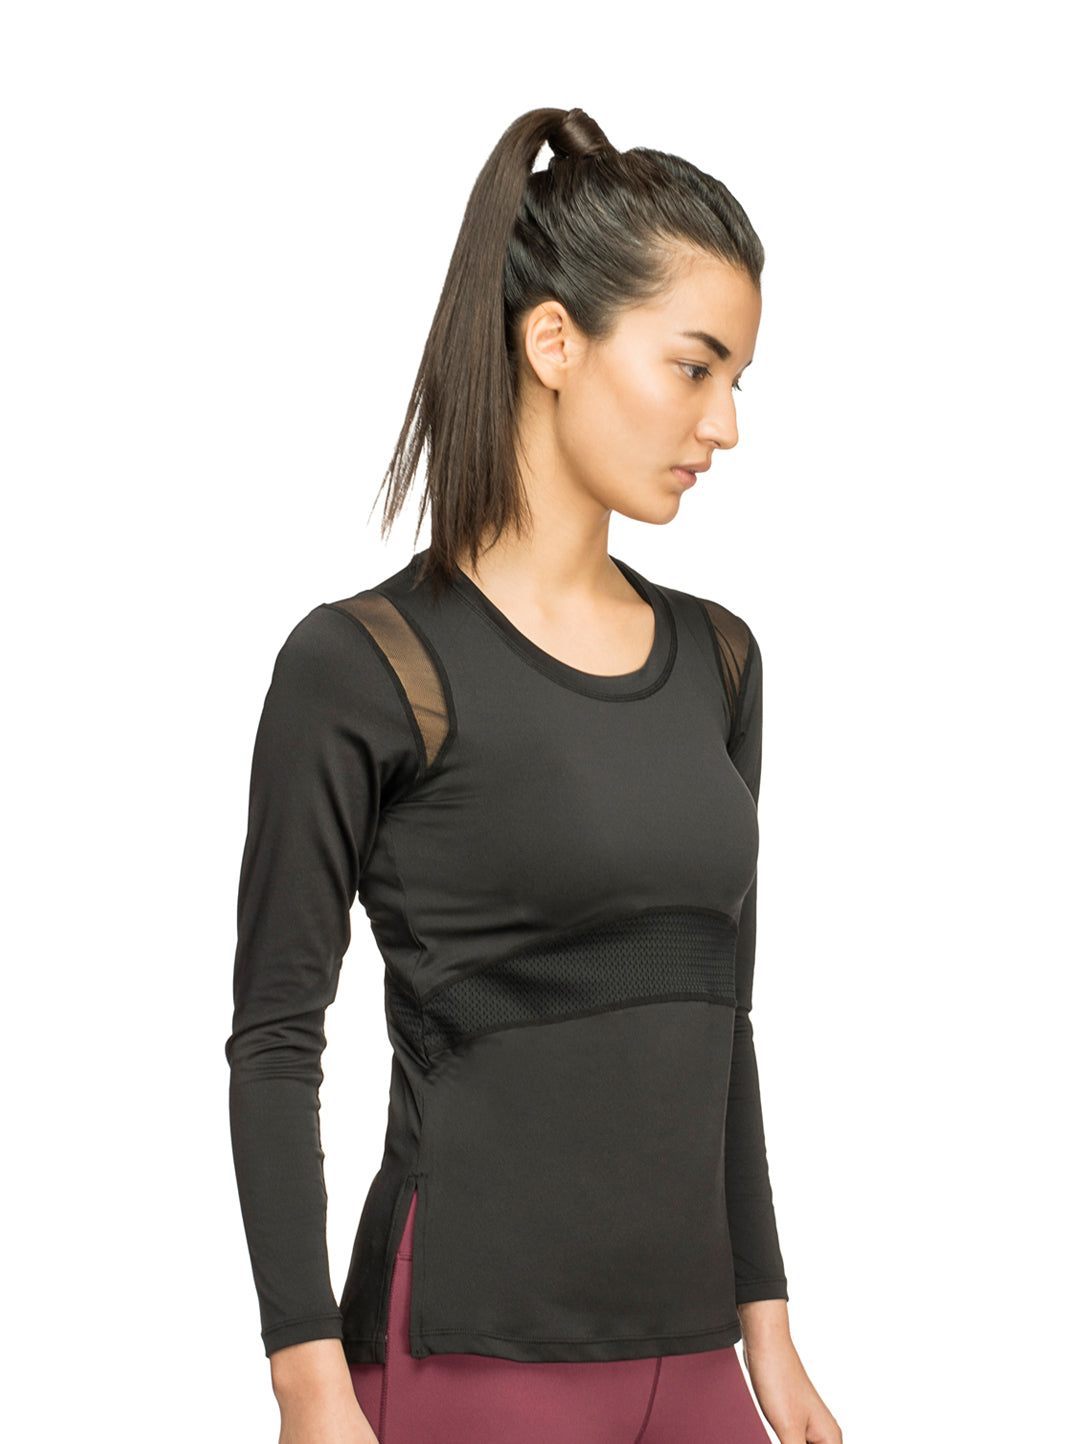 Fitkin Long Sleeve Gym Top